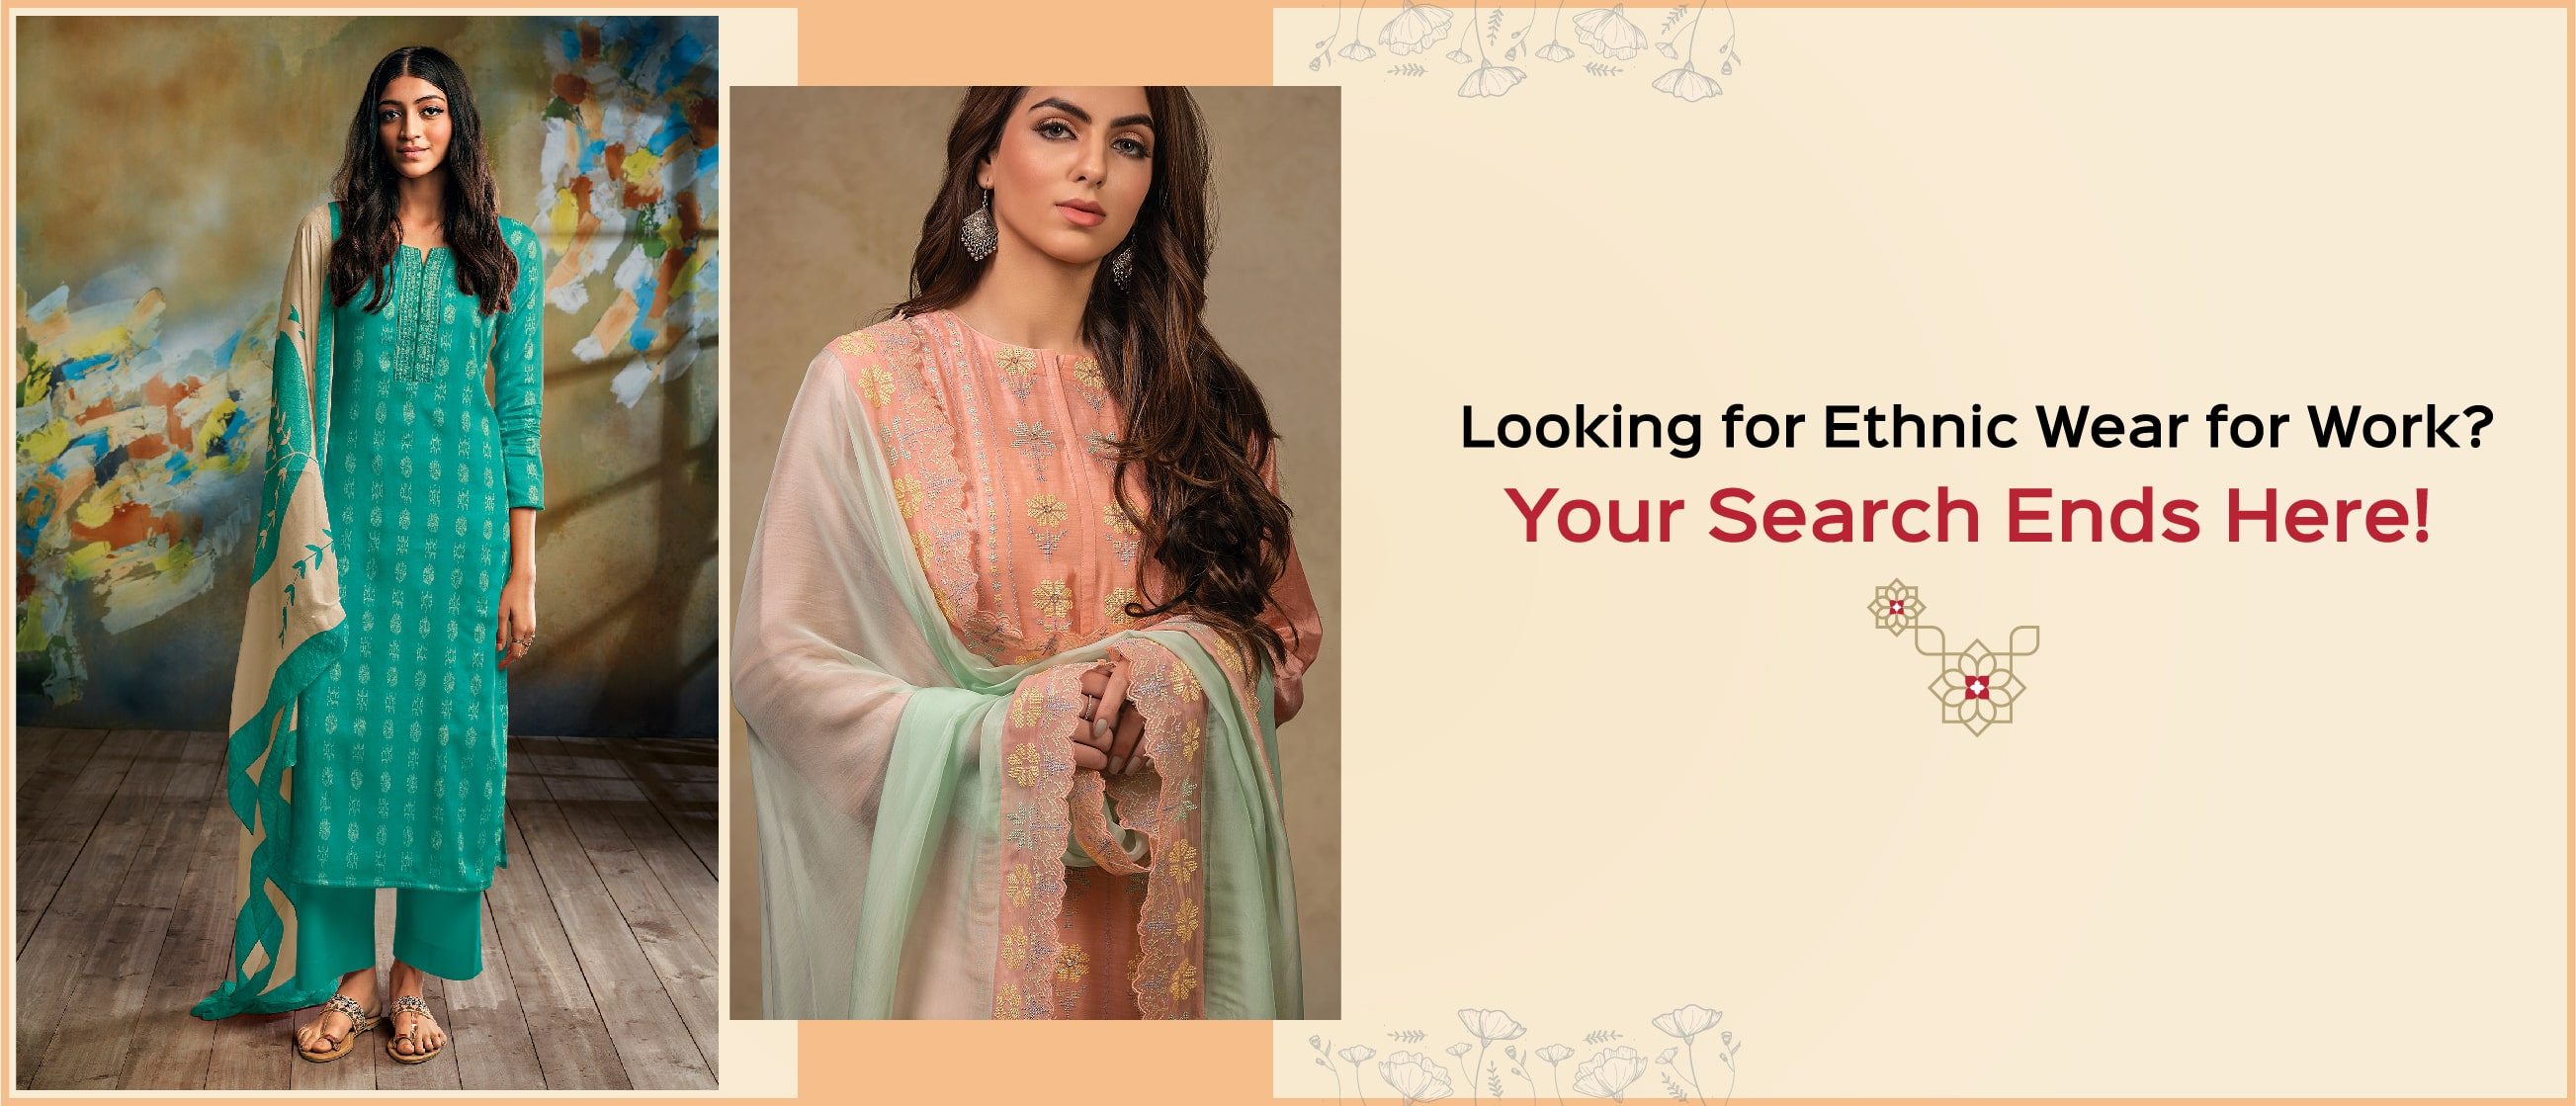 Looking for Ethnic Wear for Work? Your Search Ends Here!